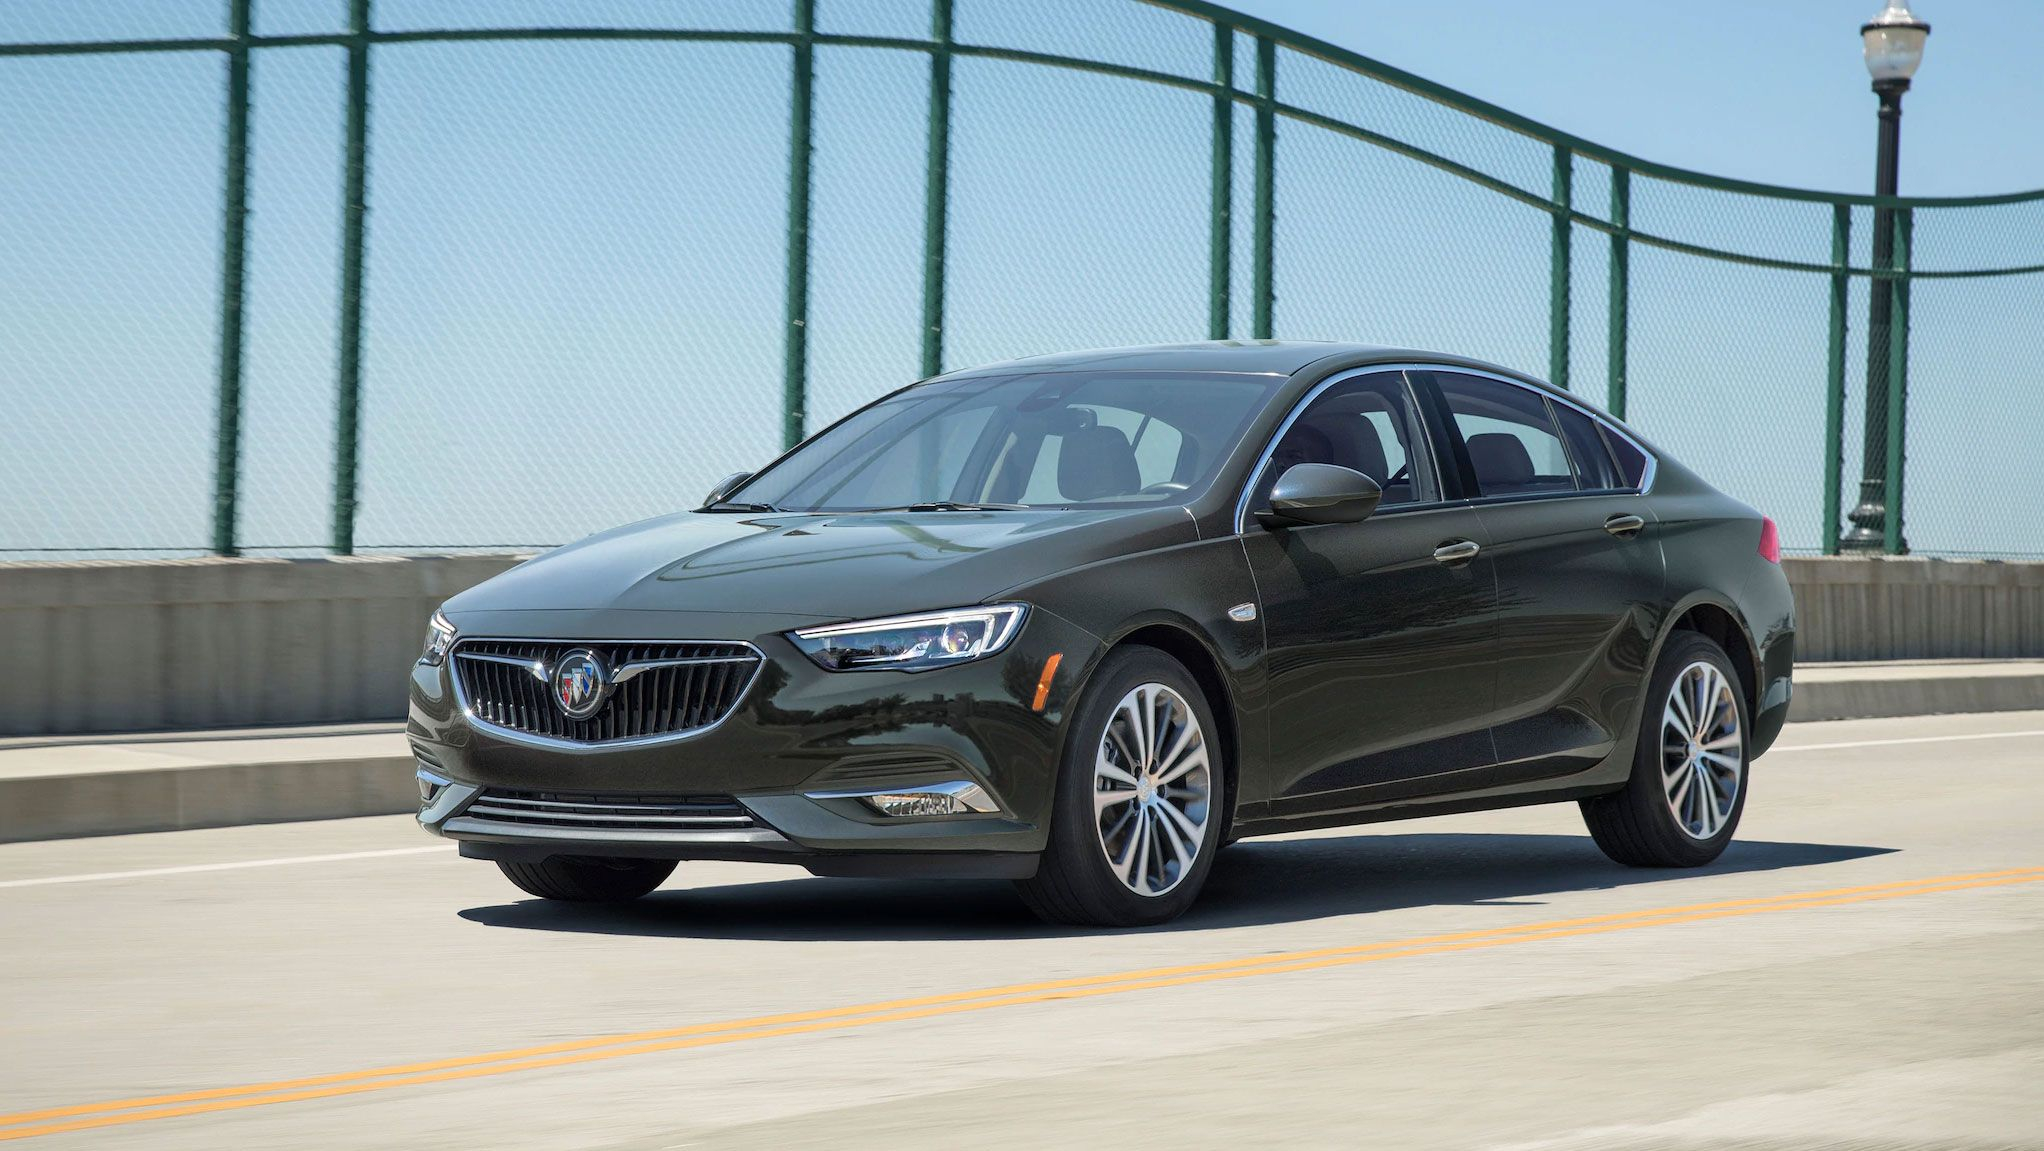 2020 Buick Regal Sportback Review, Pricing, And Specs 2021 Buick Regal Gs Lease, Engine, Owners Manual